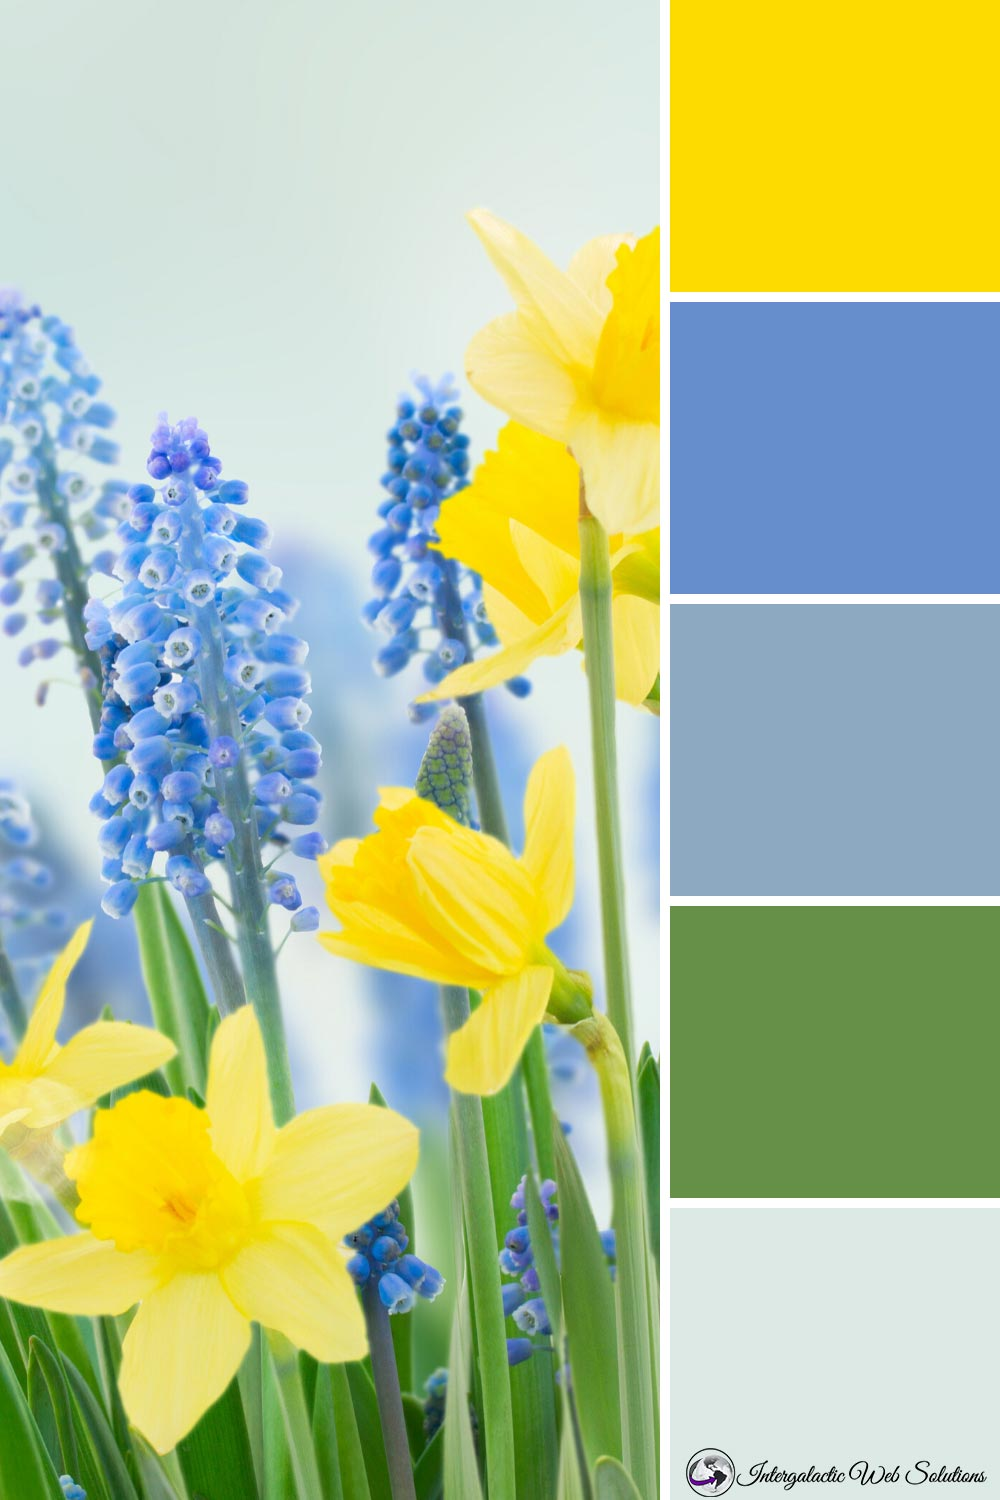 Daffodils and Hyacinth Palette